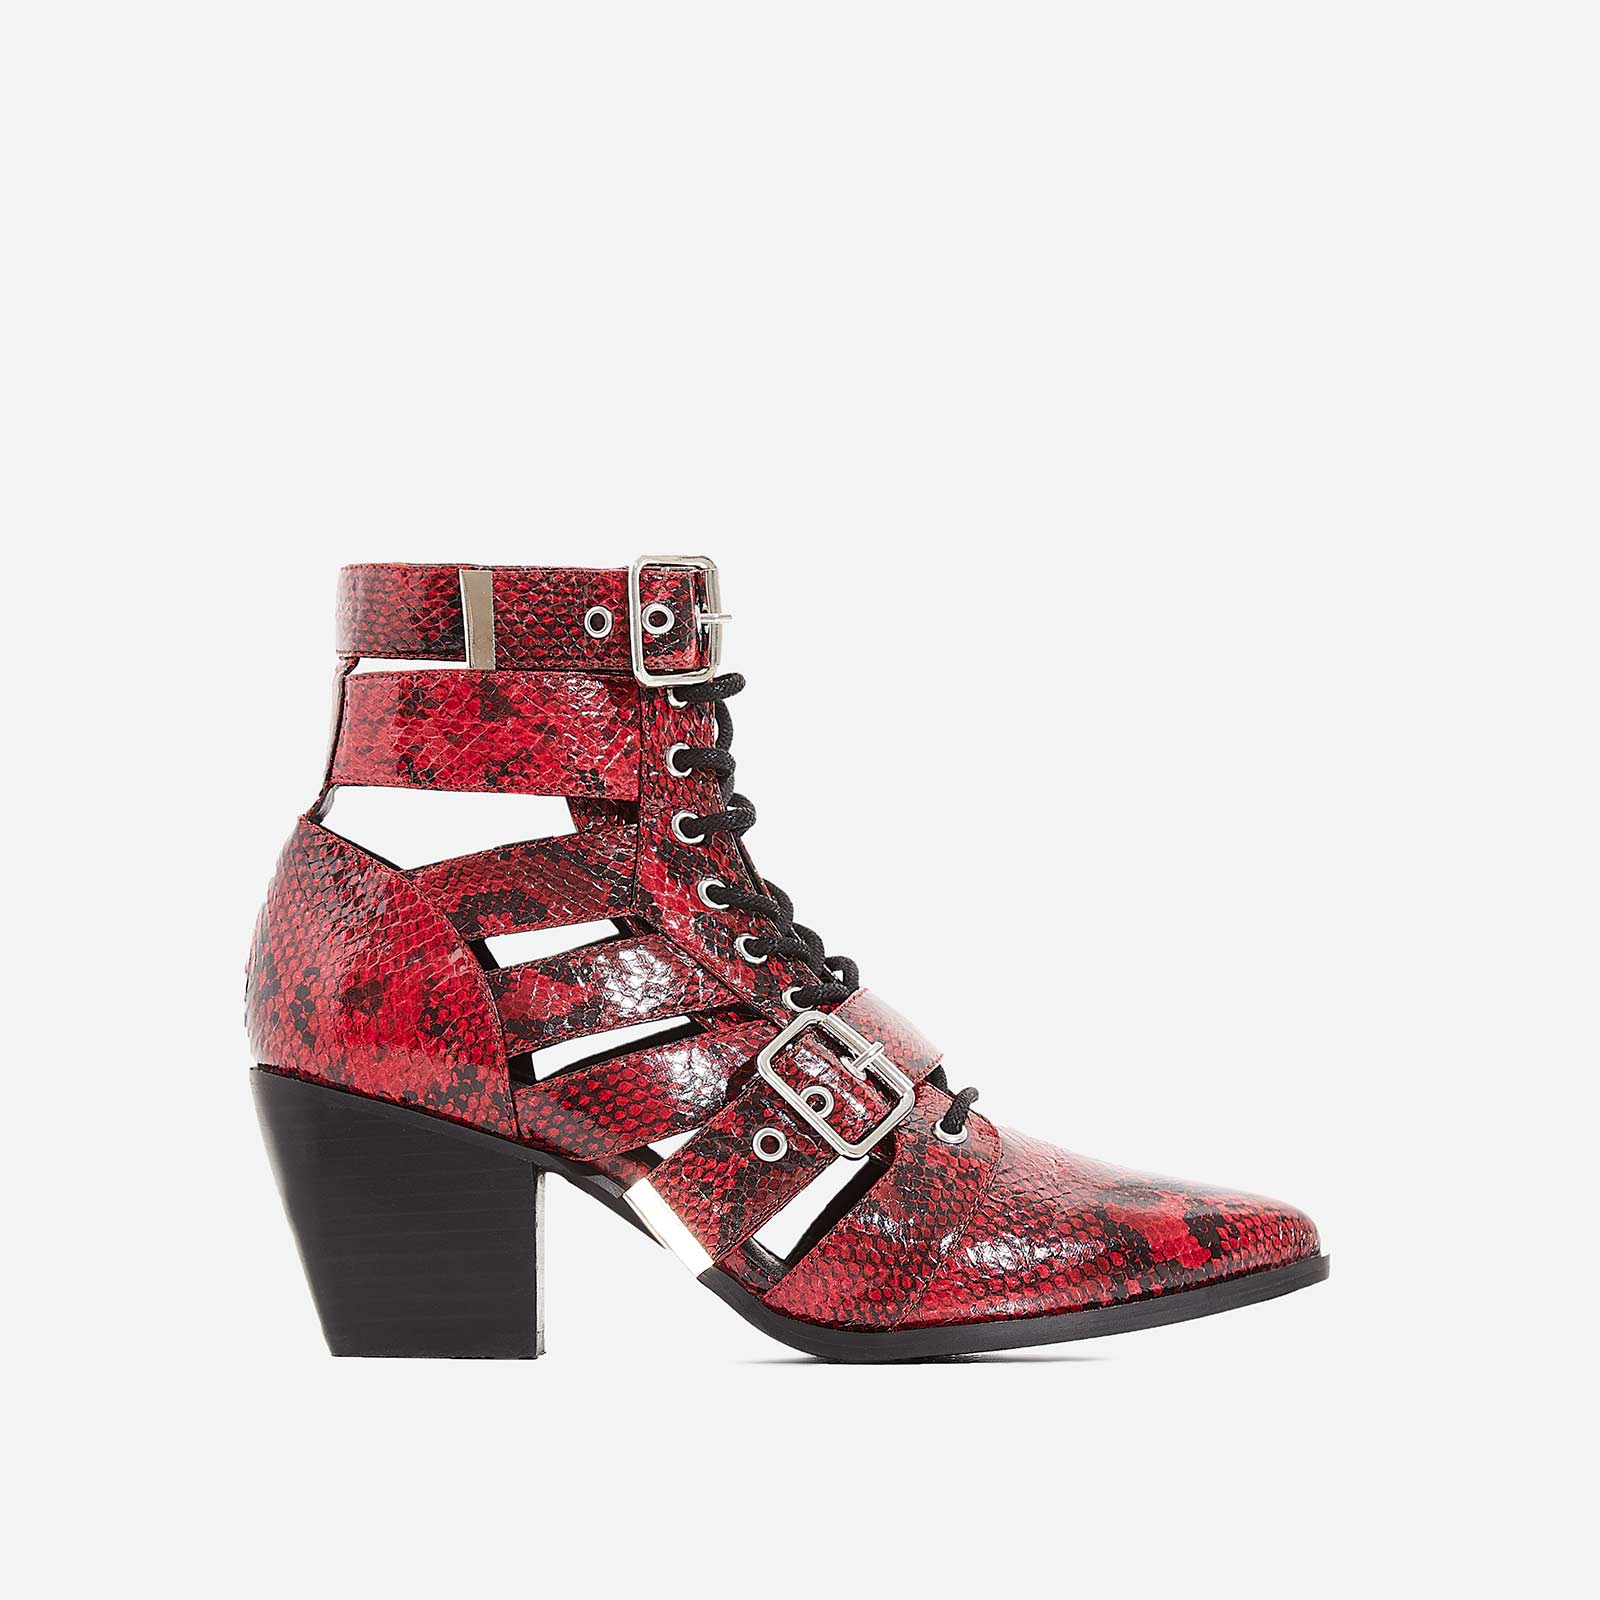 Cotto Cut Out Lace Up Ankle Western Boot In Red Snake Print Faux Leather